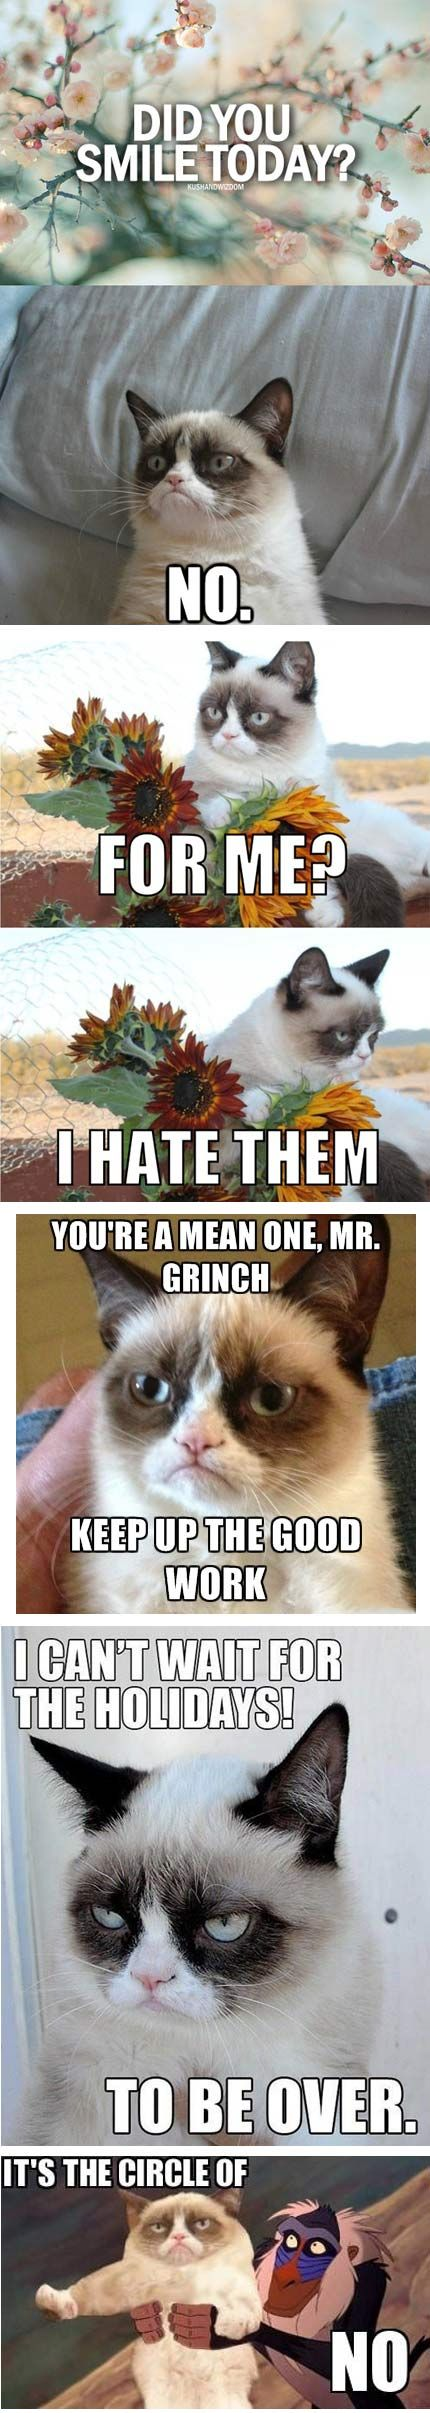 The Best Of Grumpy Cat...Click on the pic to see funnier ones!